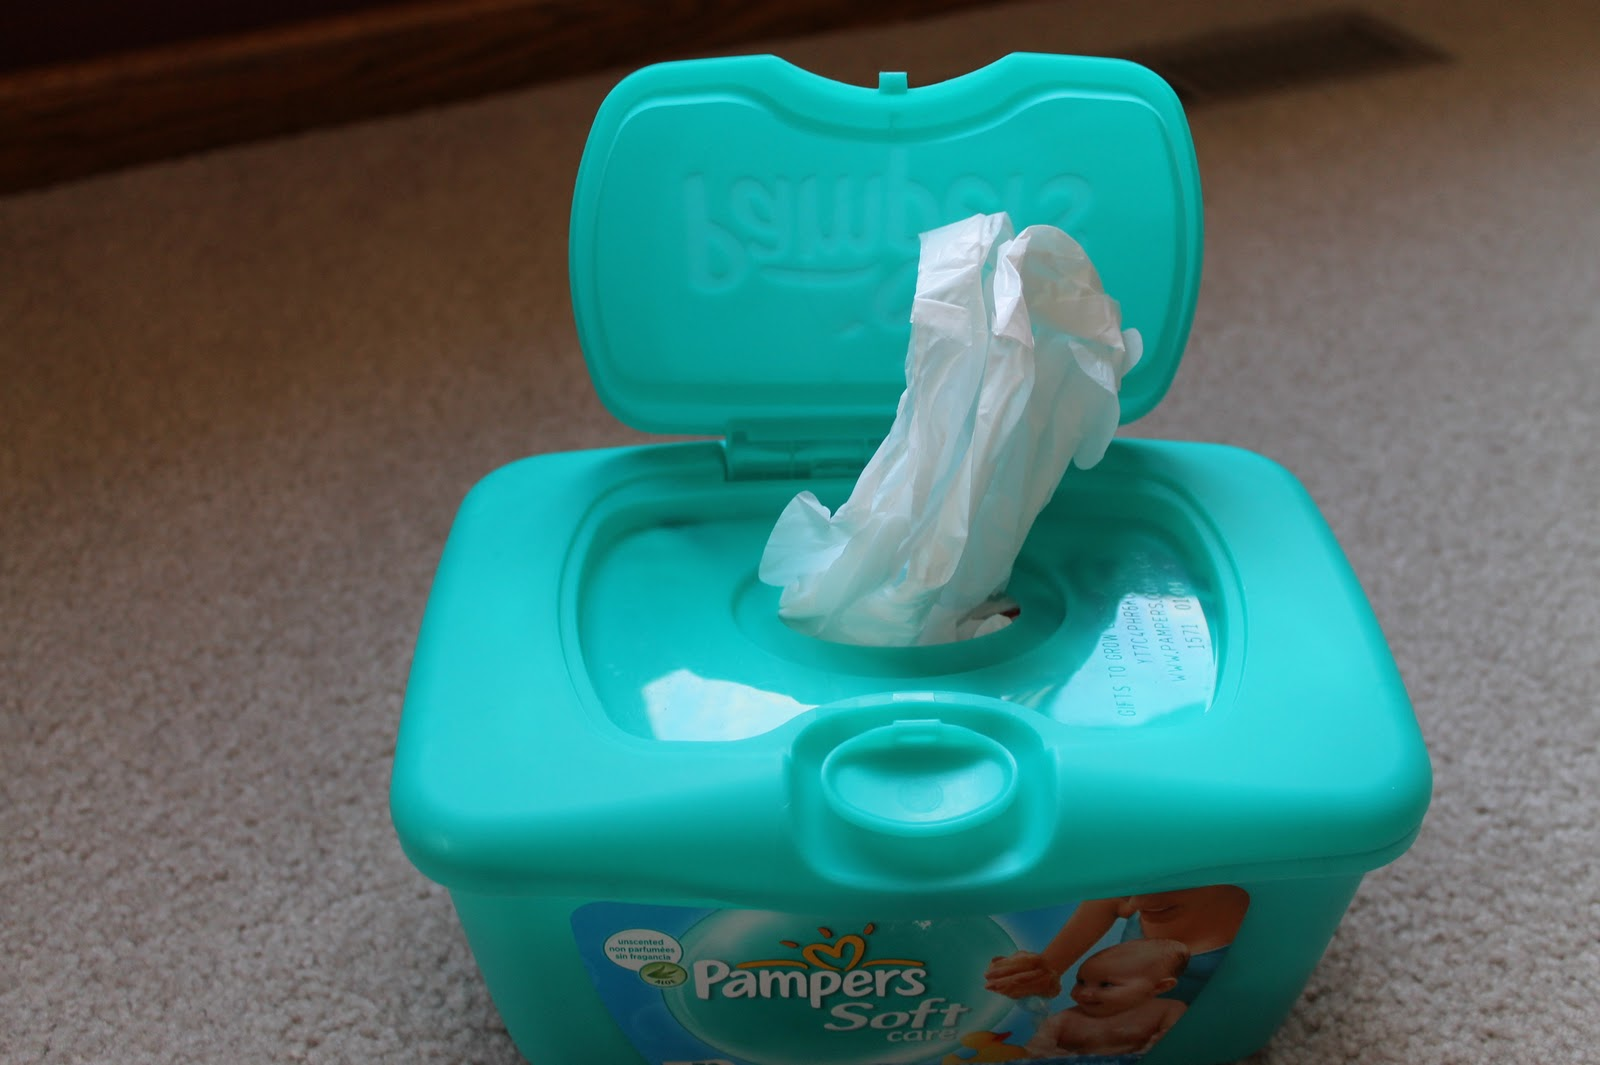 Five Ways To Reuse Baby Wipes Containers The Purposeful Mom